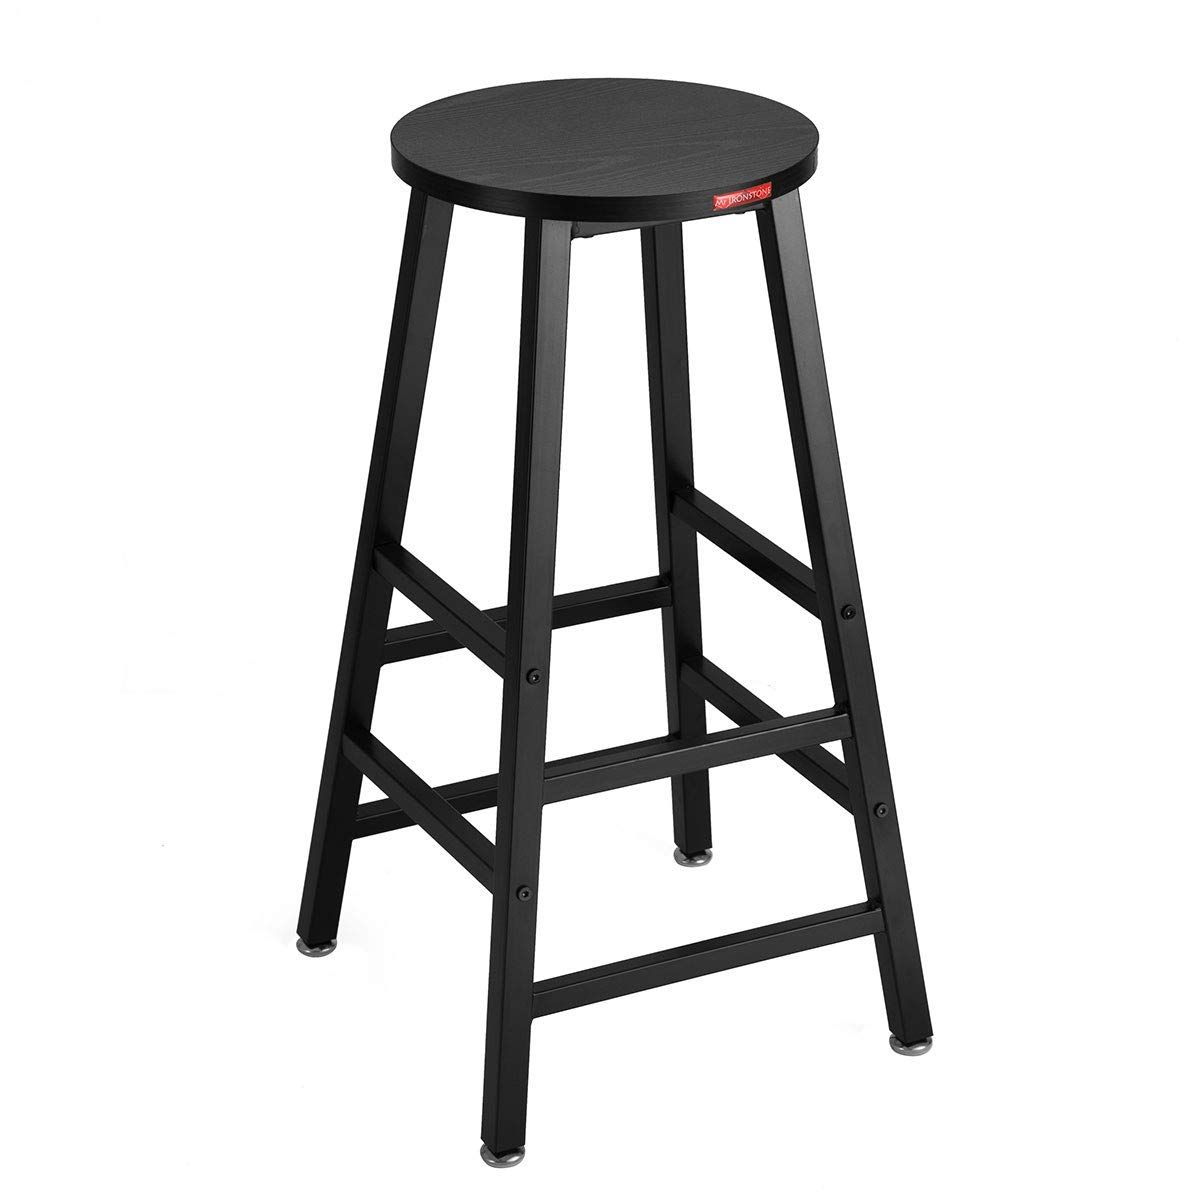 Mr Ironstone Bar Stool Black Pub Height Bar Stool 27 7 Pub Dining Height Stools Bistro Table Chairs Wood Grain Details Ca Indoor Chairs Dining Stools Stool